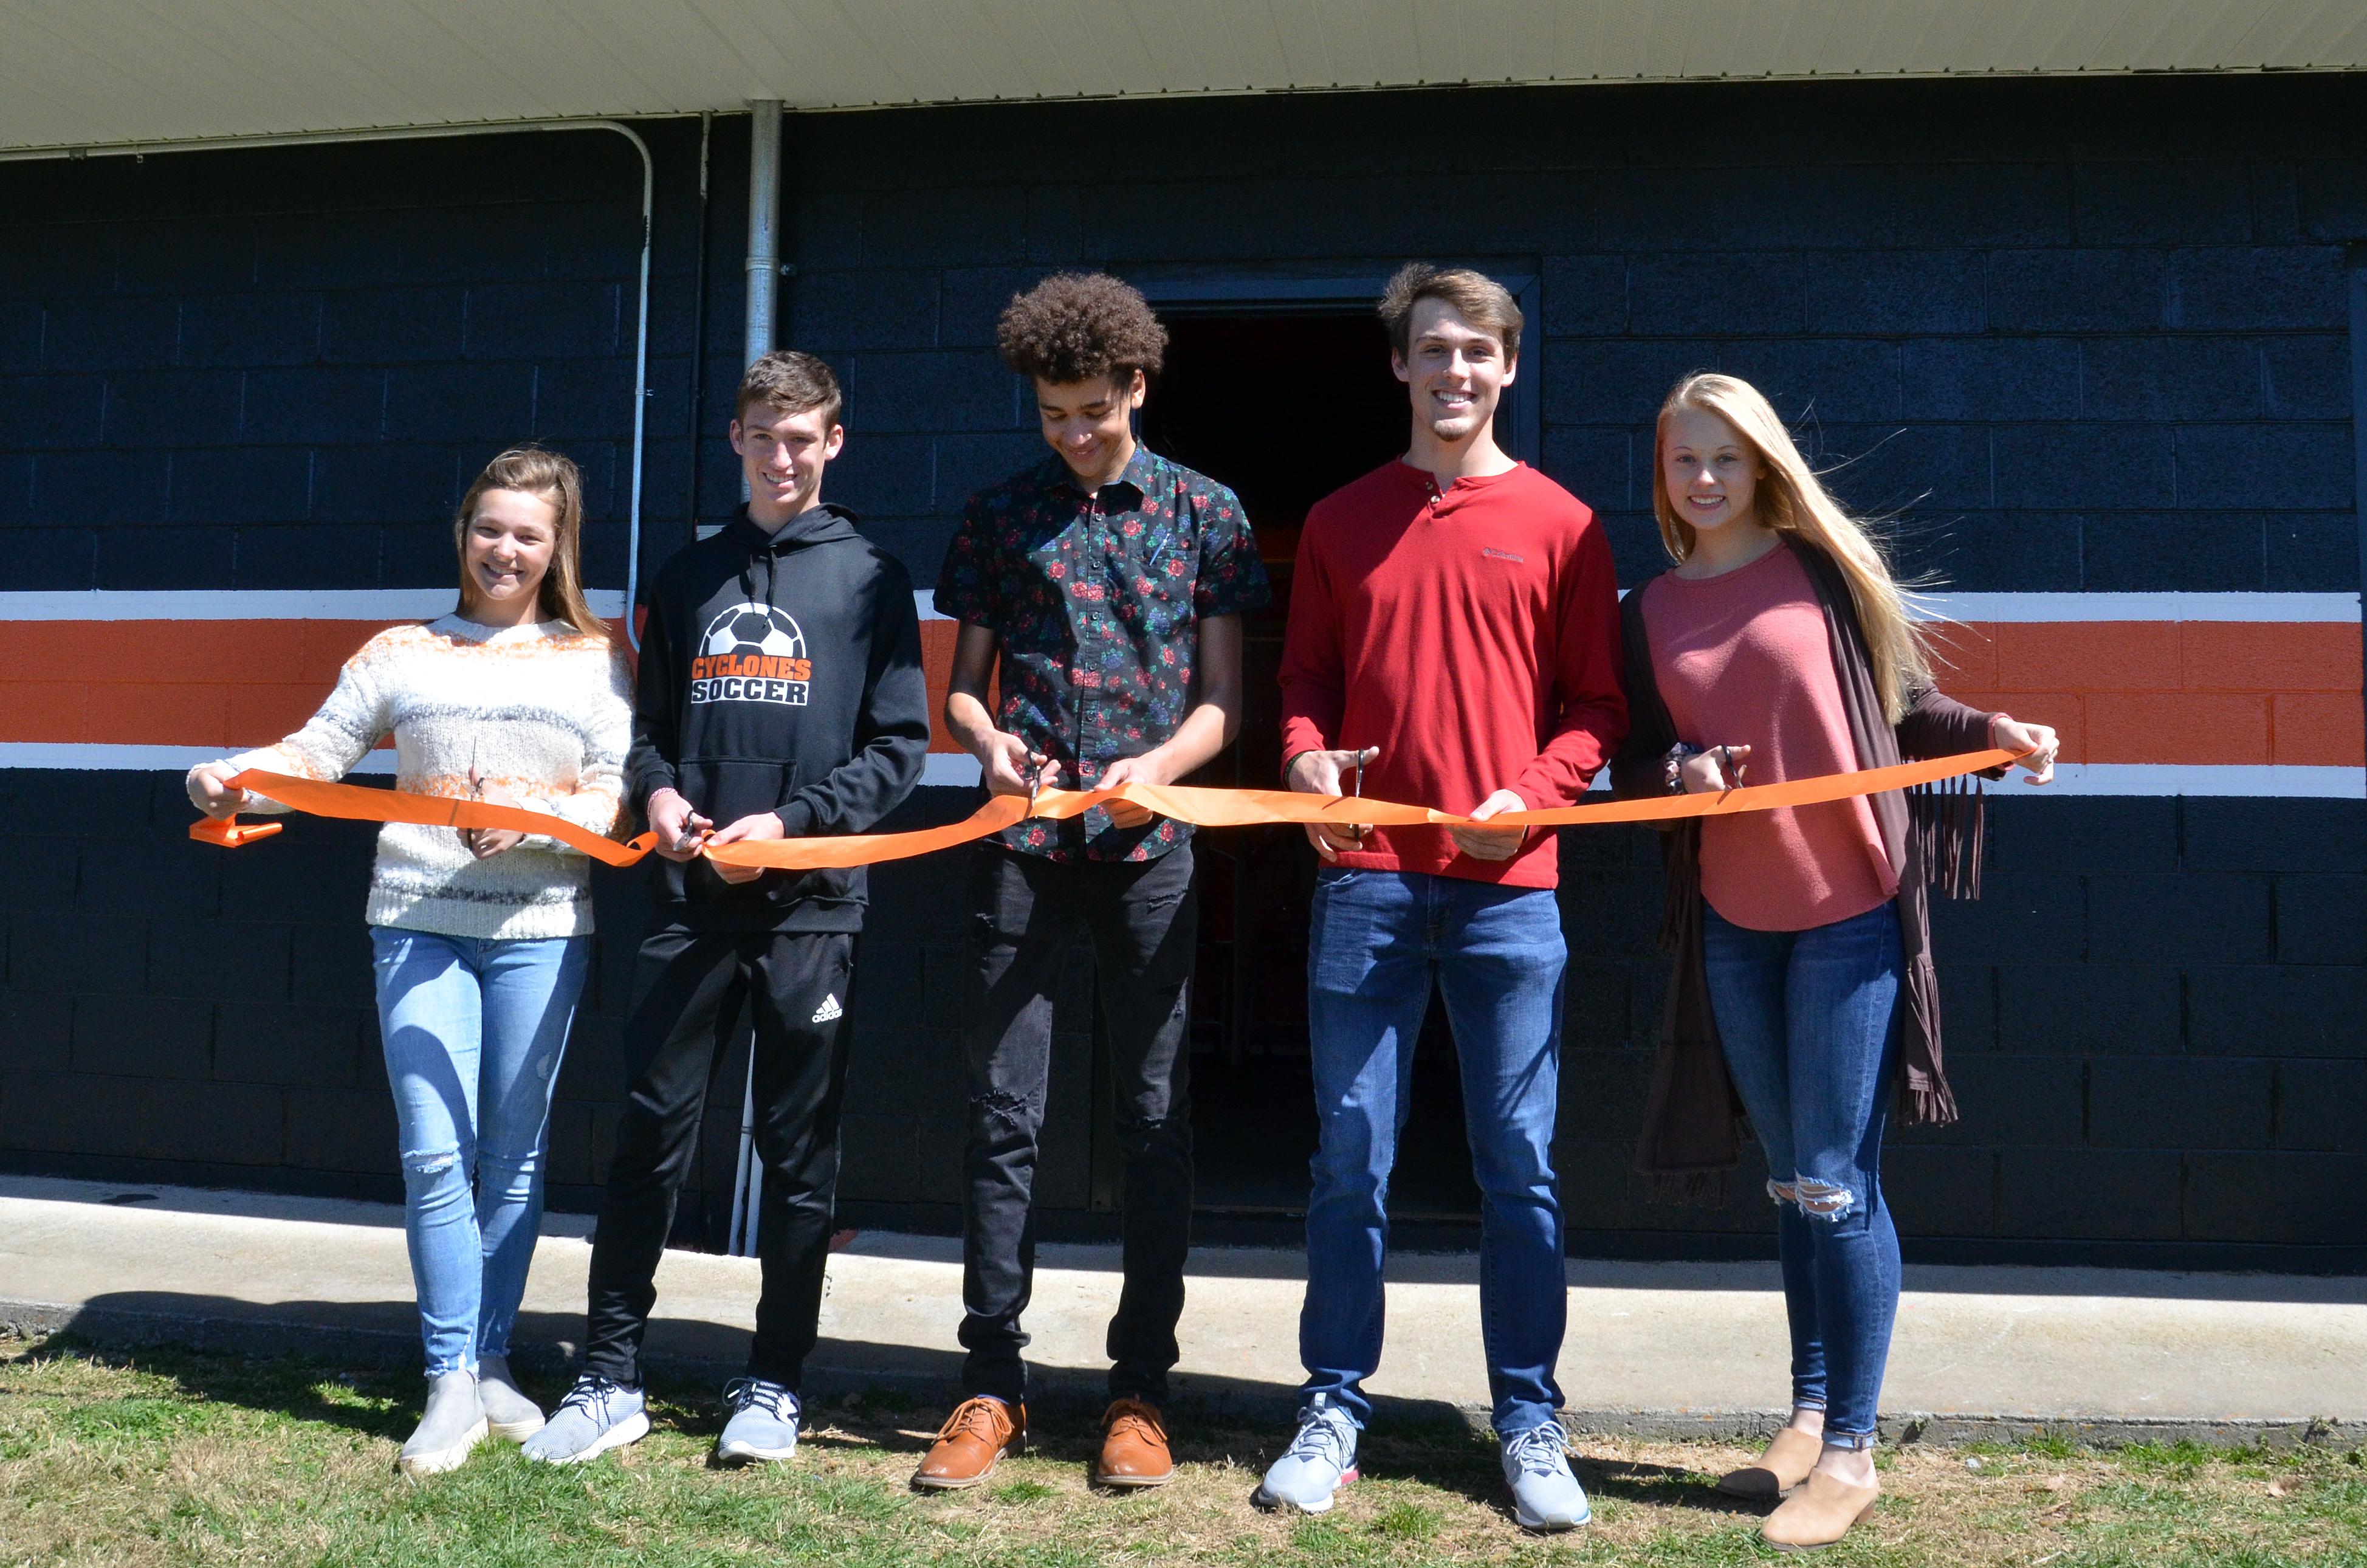 Community Improvement students (left to right) Maggie Johnson, Jaxton Holly, Nico Ashley, Evan Carter, and Kaylen Shell cut the ribbon on the new soccer locker room.